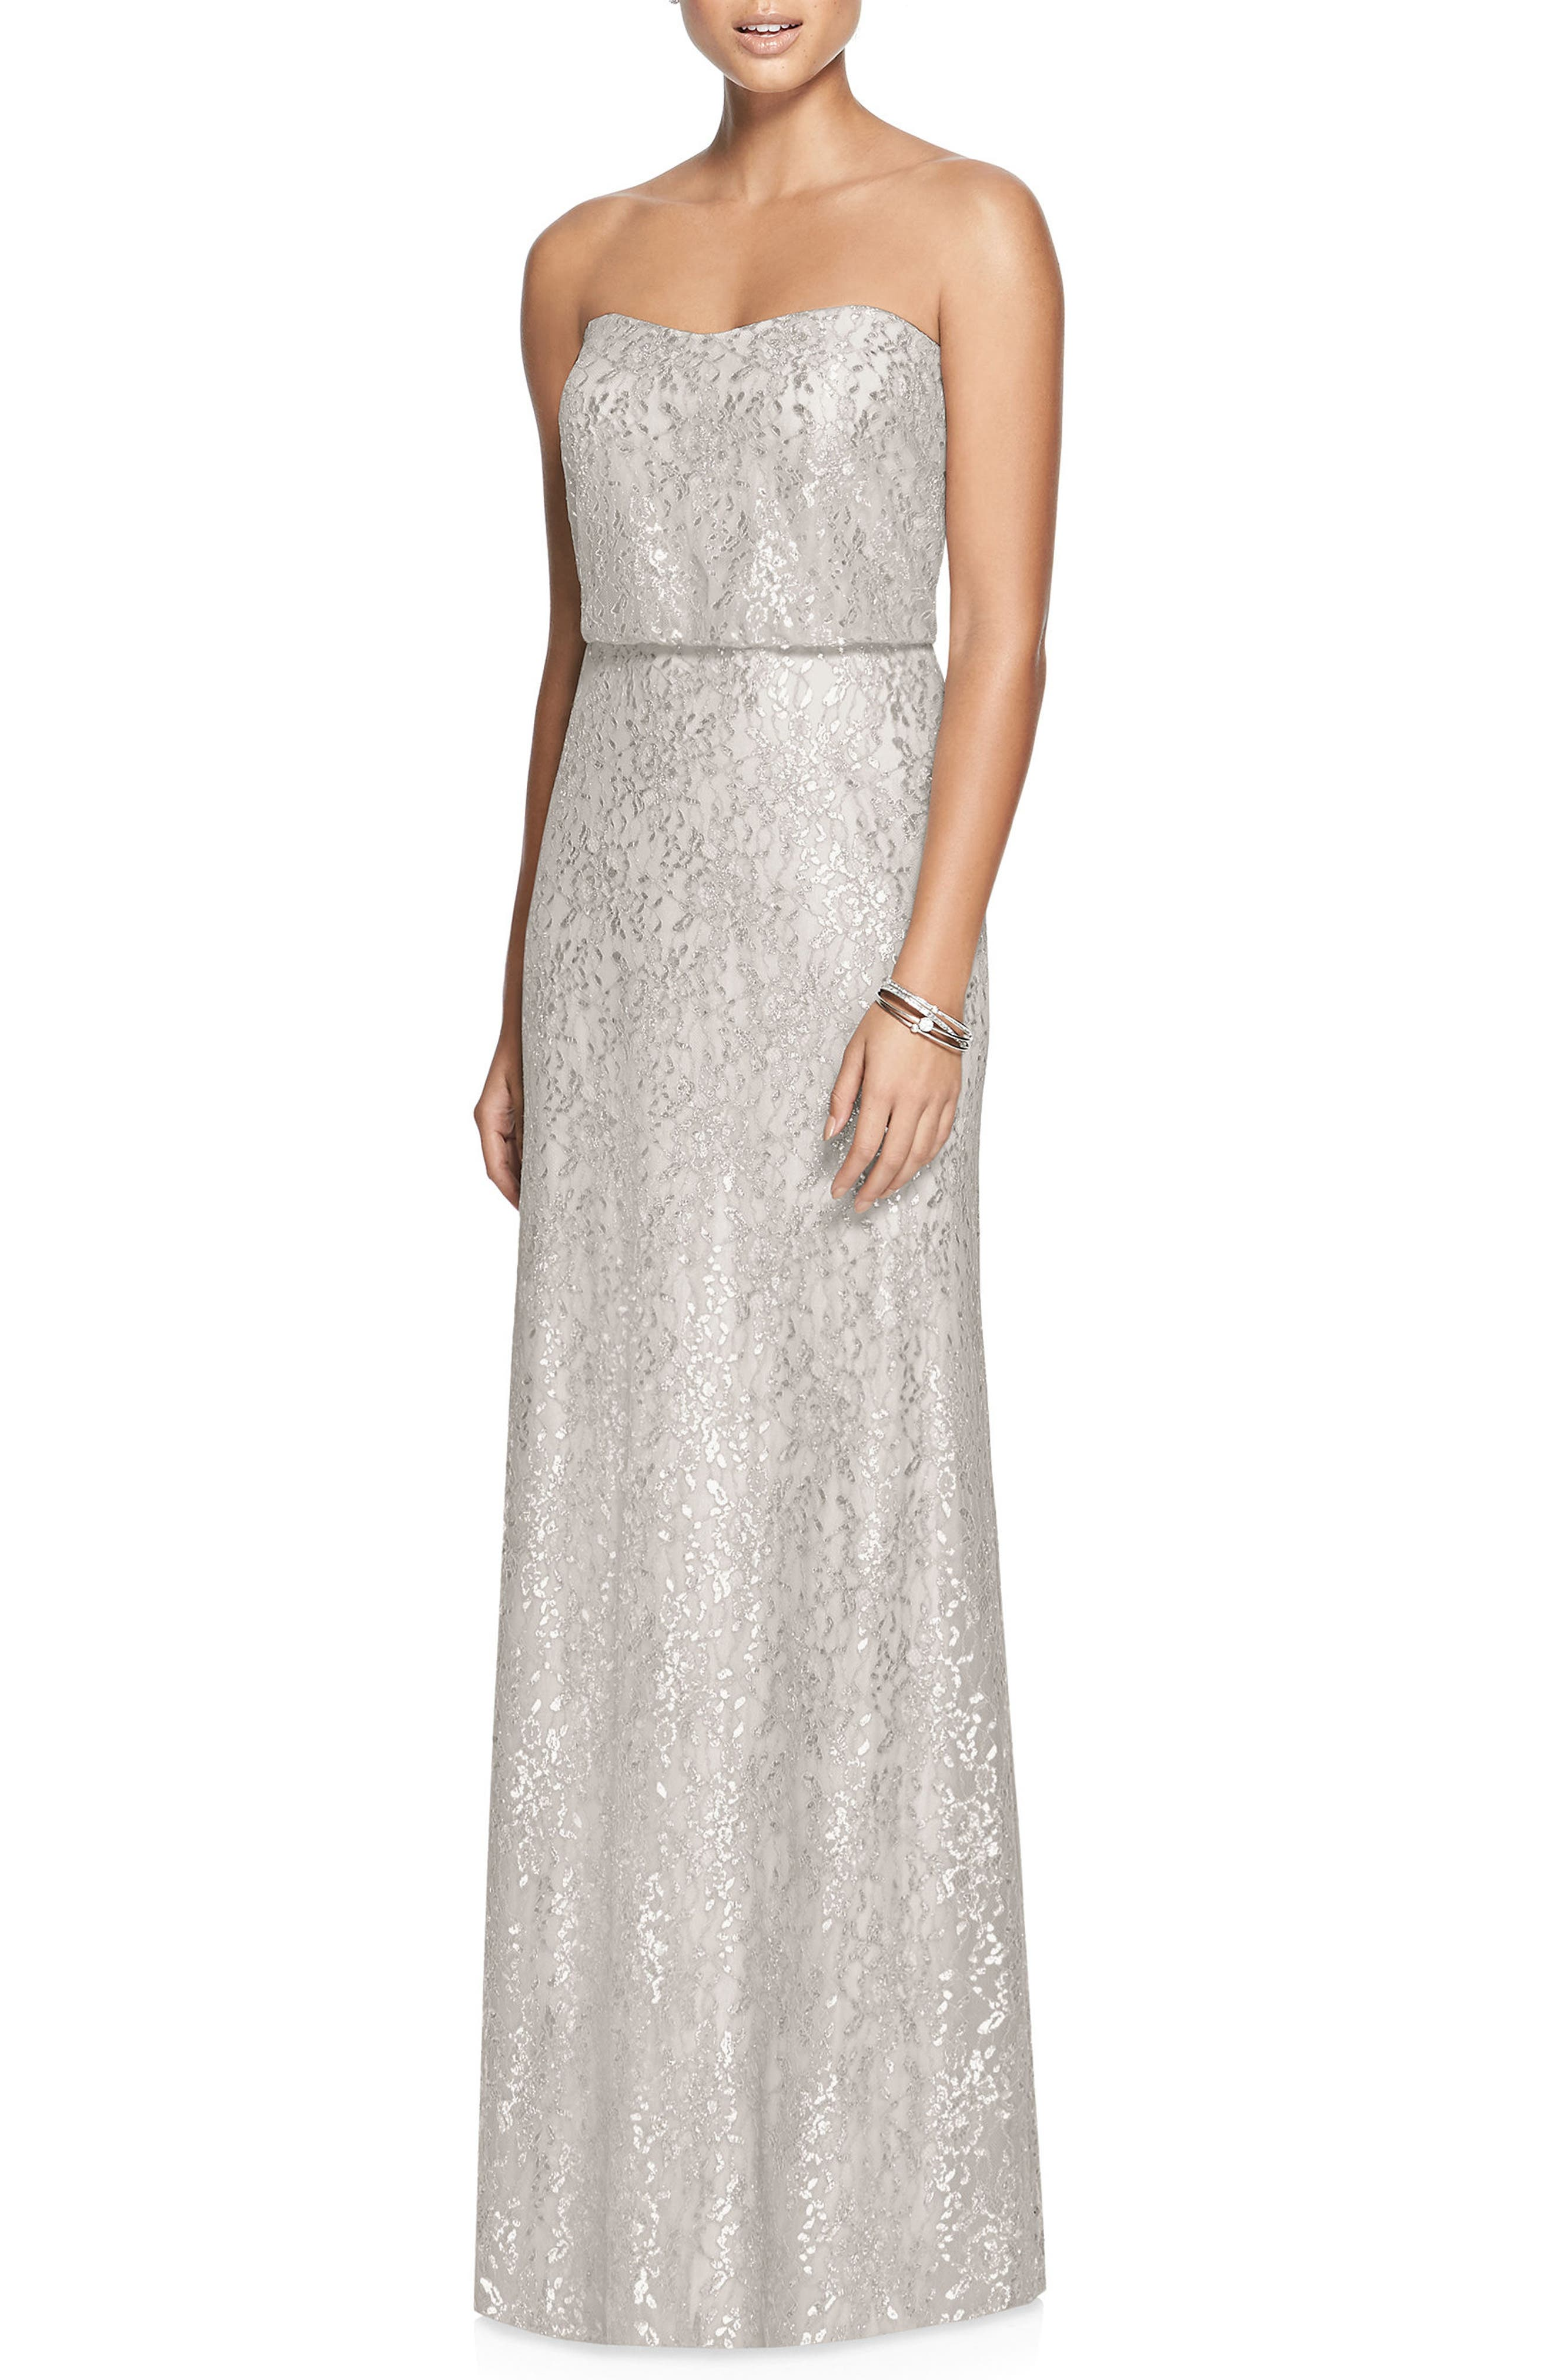 Metallic Lace Strapless Blouson Gown,                             Main thumbnail 1, color,                             OYSTER